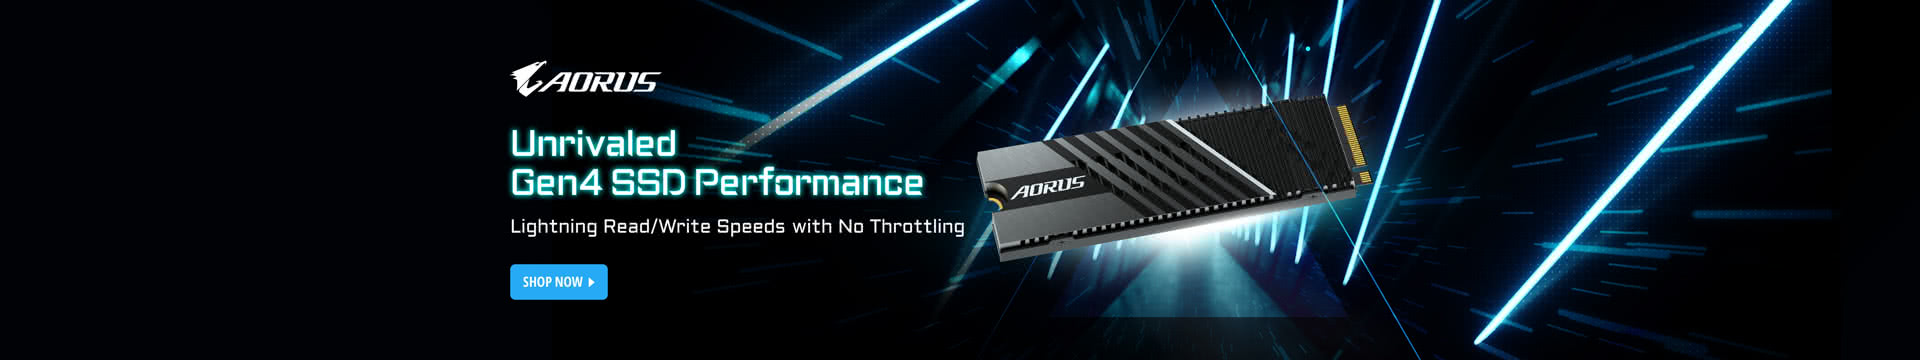 Unrivaled Gen4 SSD performance